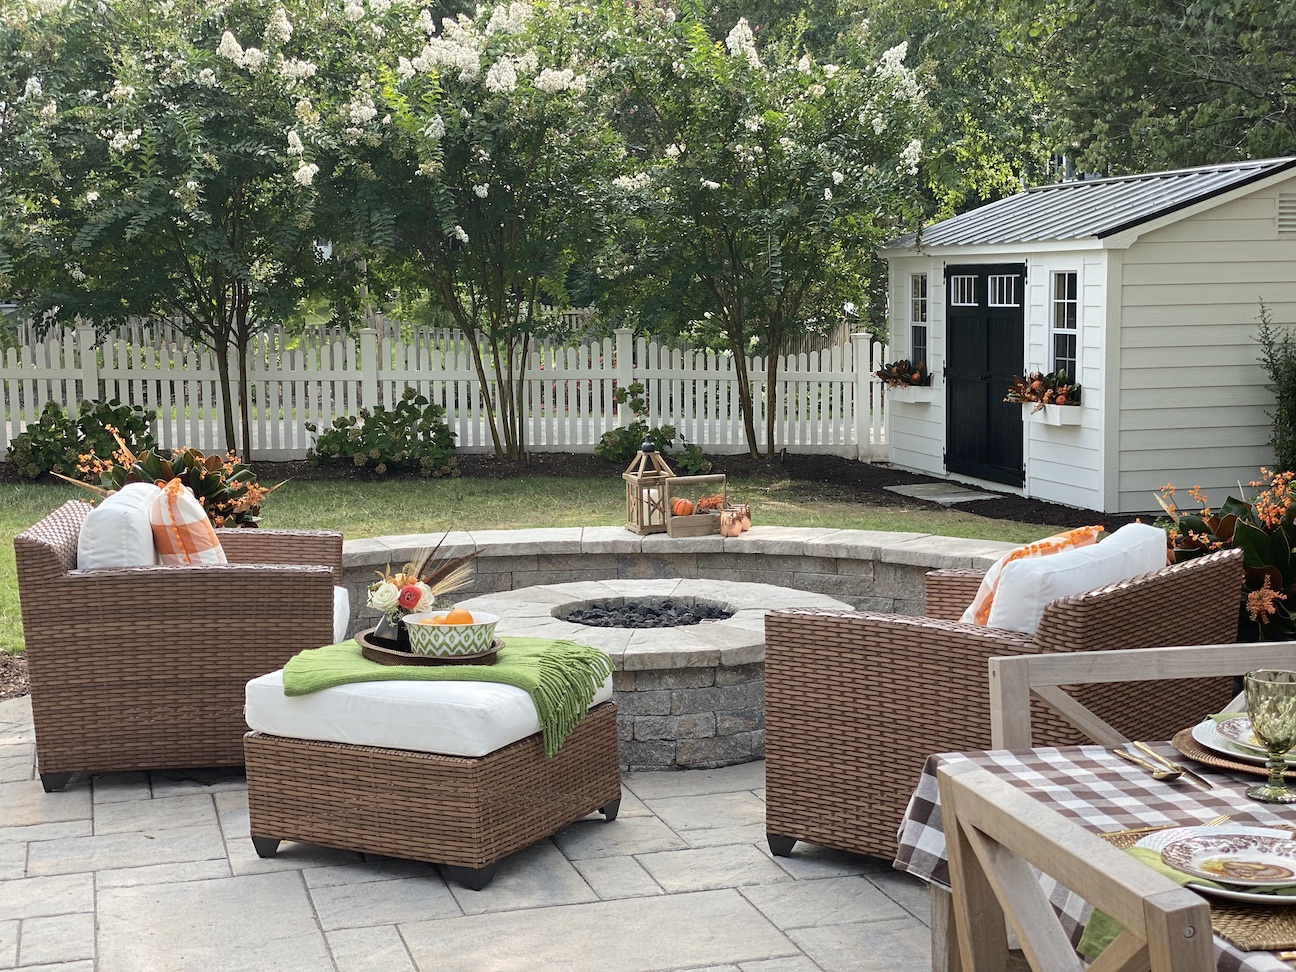 Fire pit and paver patio with seating